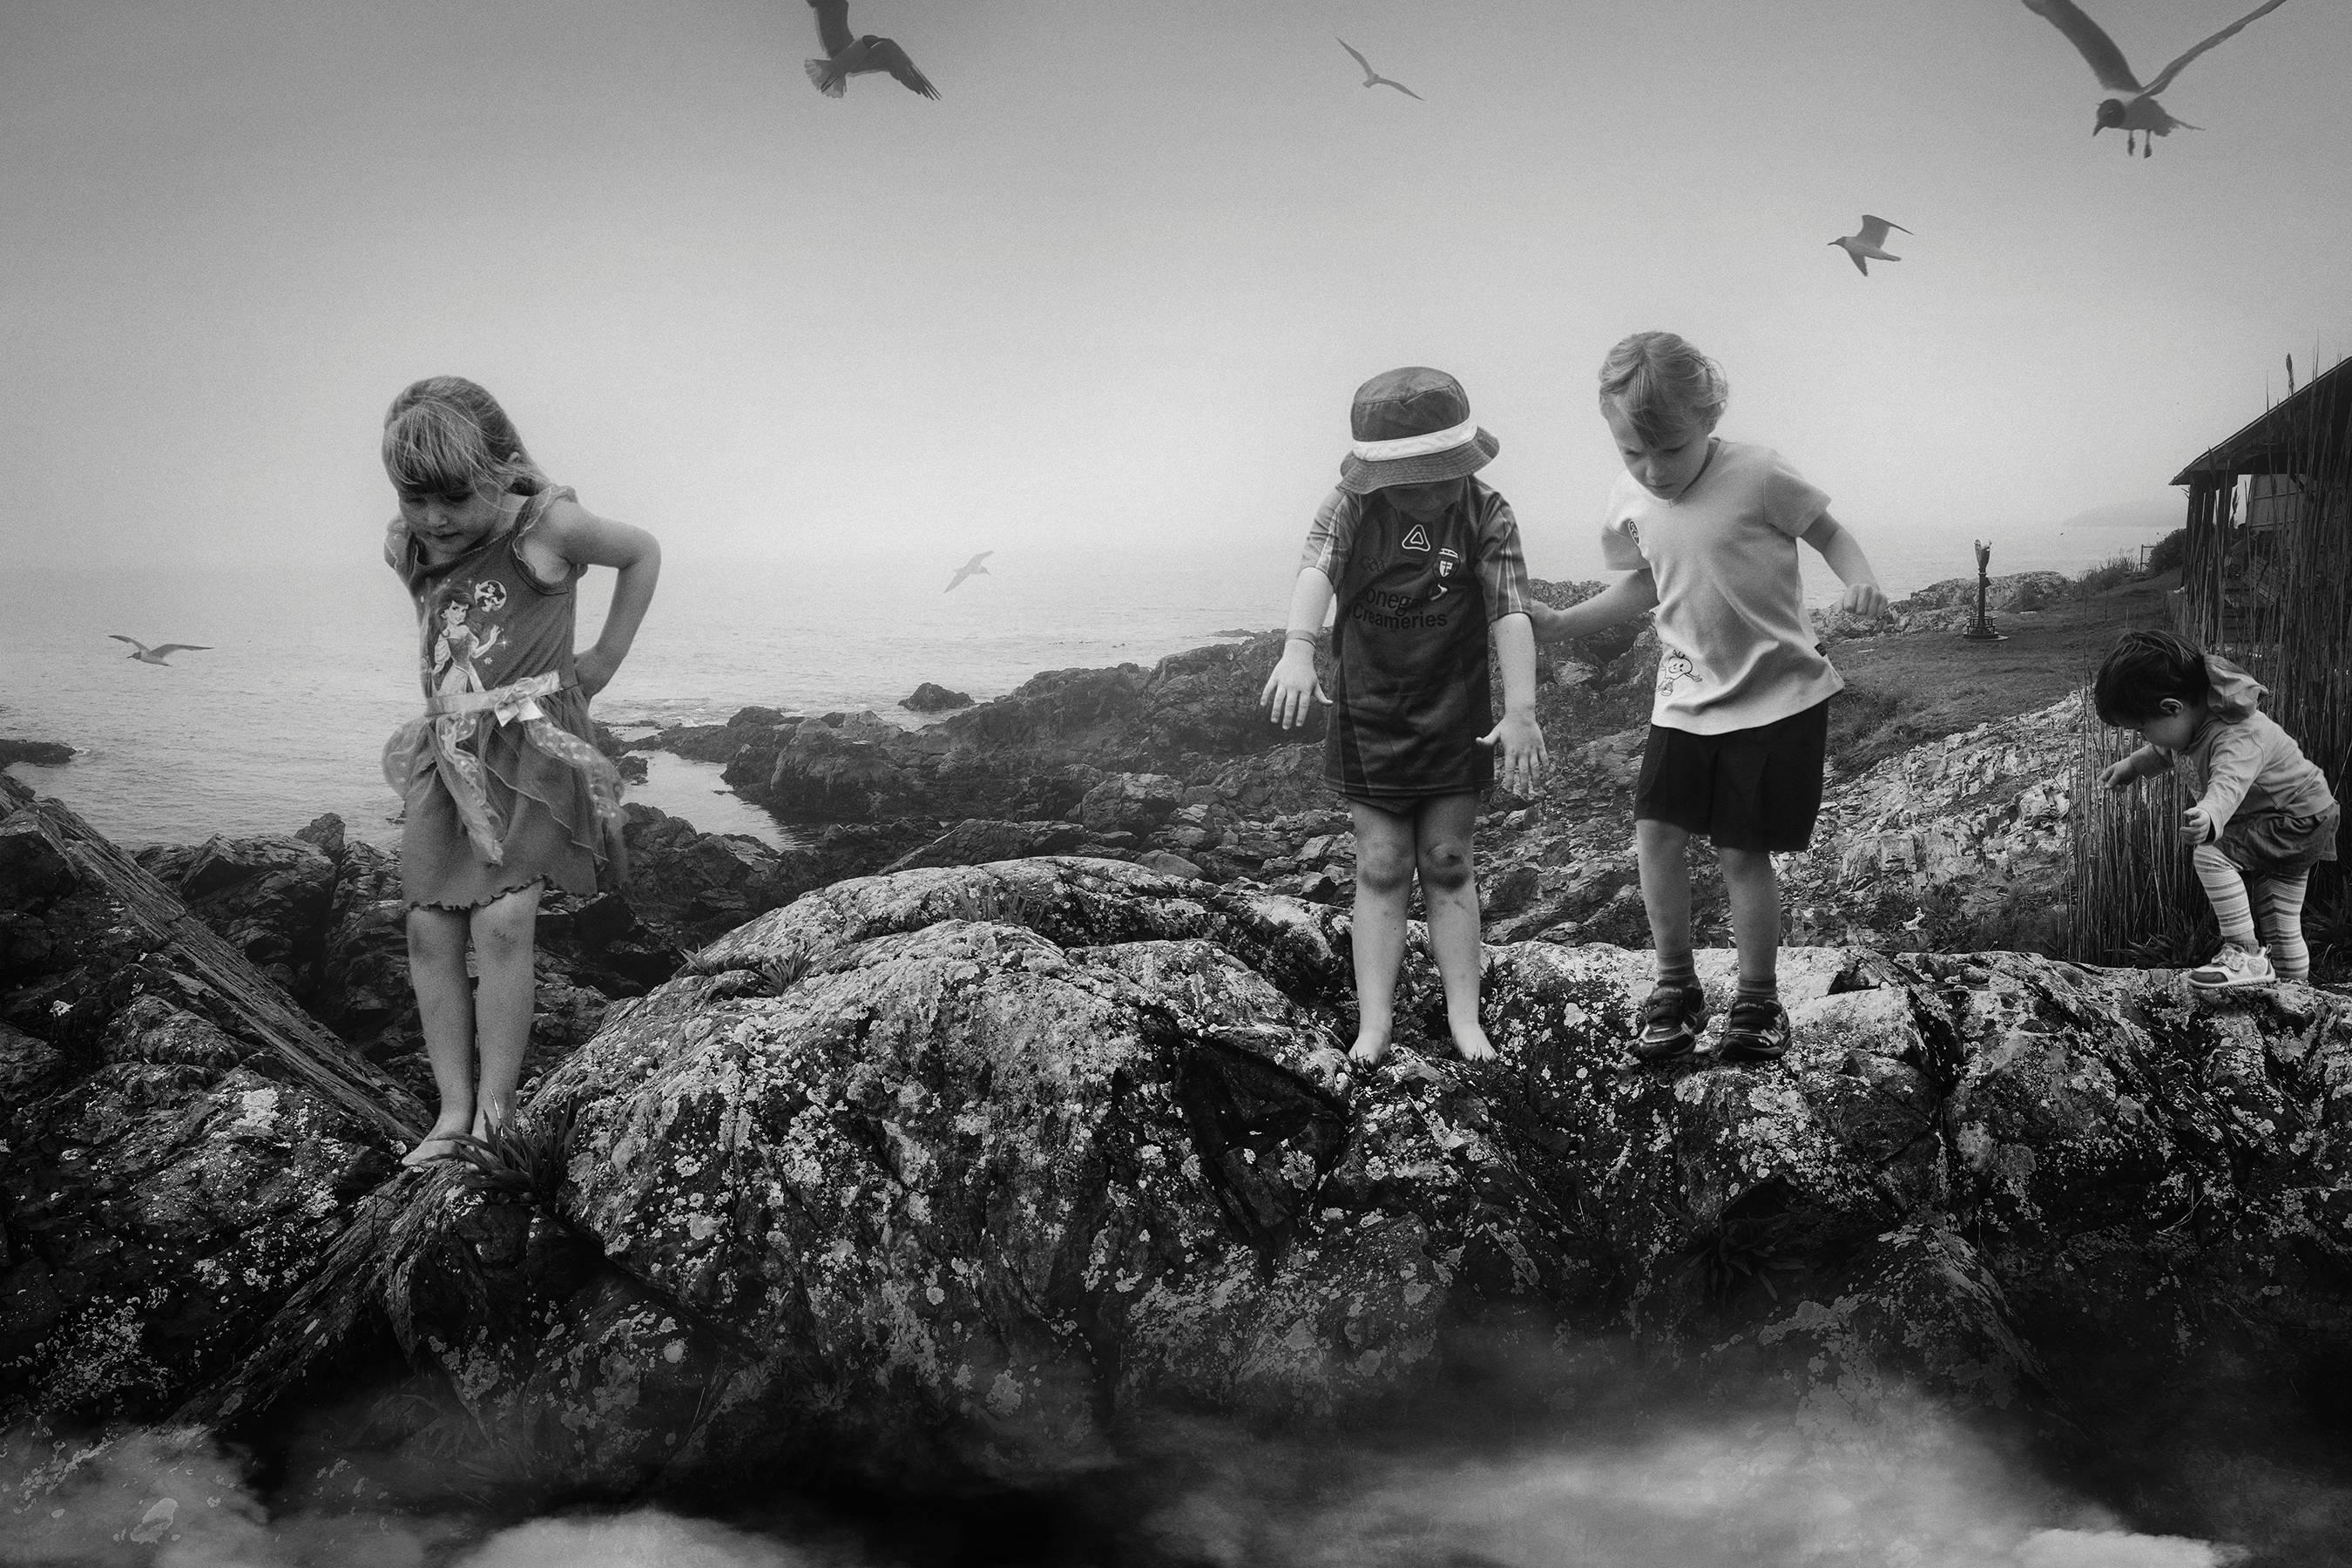 Jump (black and white, art with children, landscape, photography)